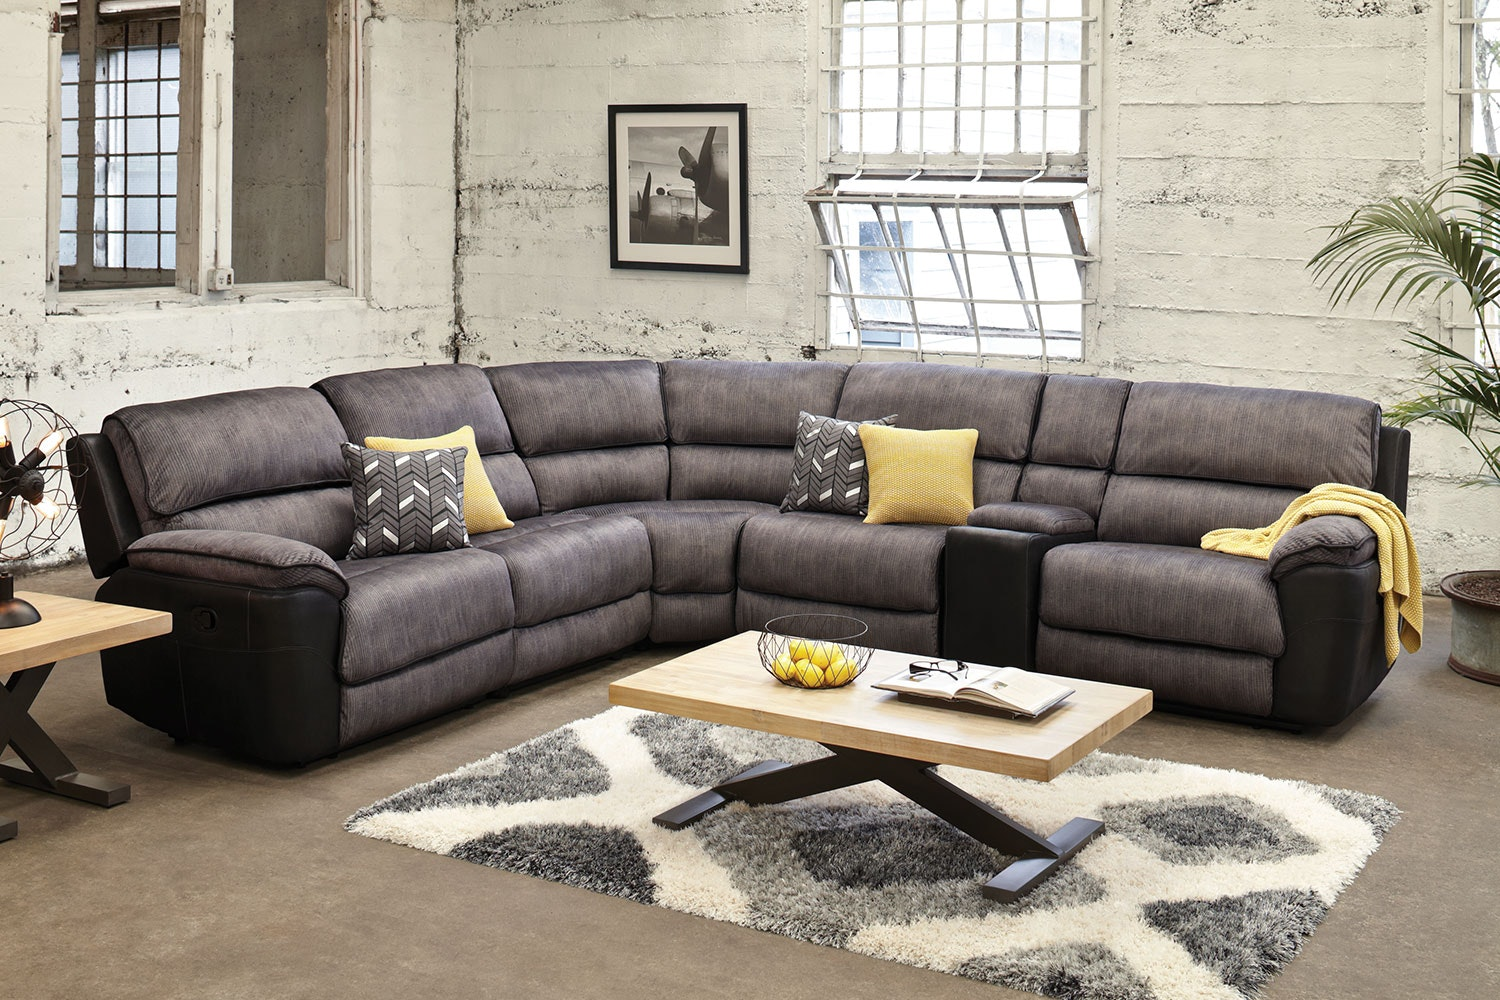 york lounge suite. lachlan 5 seater fabric corner lounge suite by vivin york b